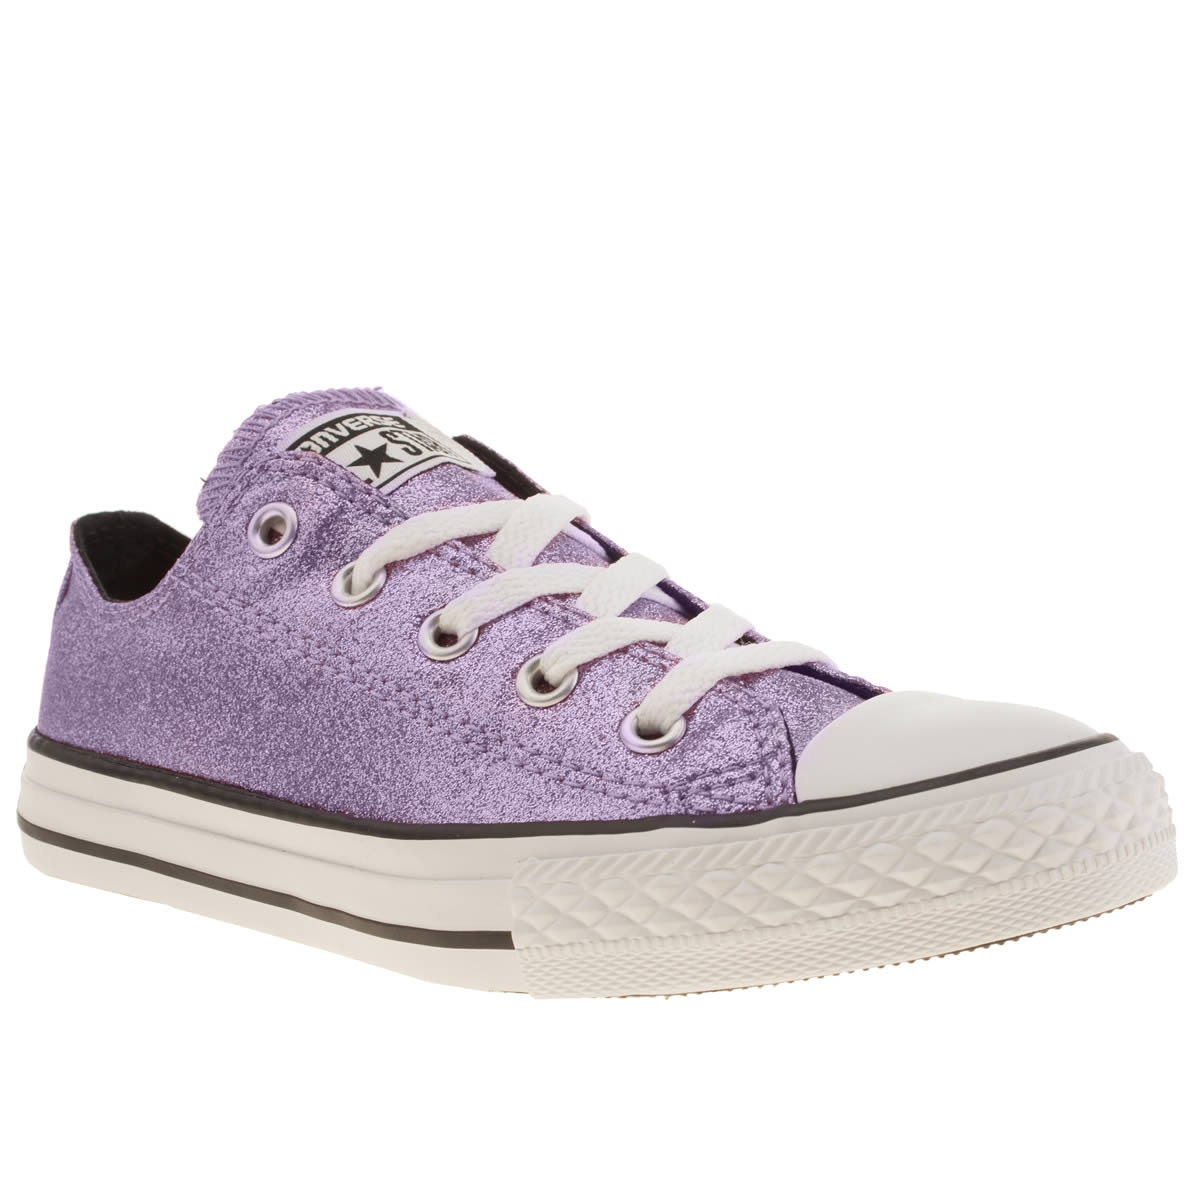 Lavender Shoes For Wedding Uk